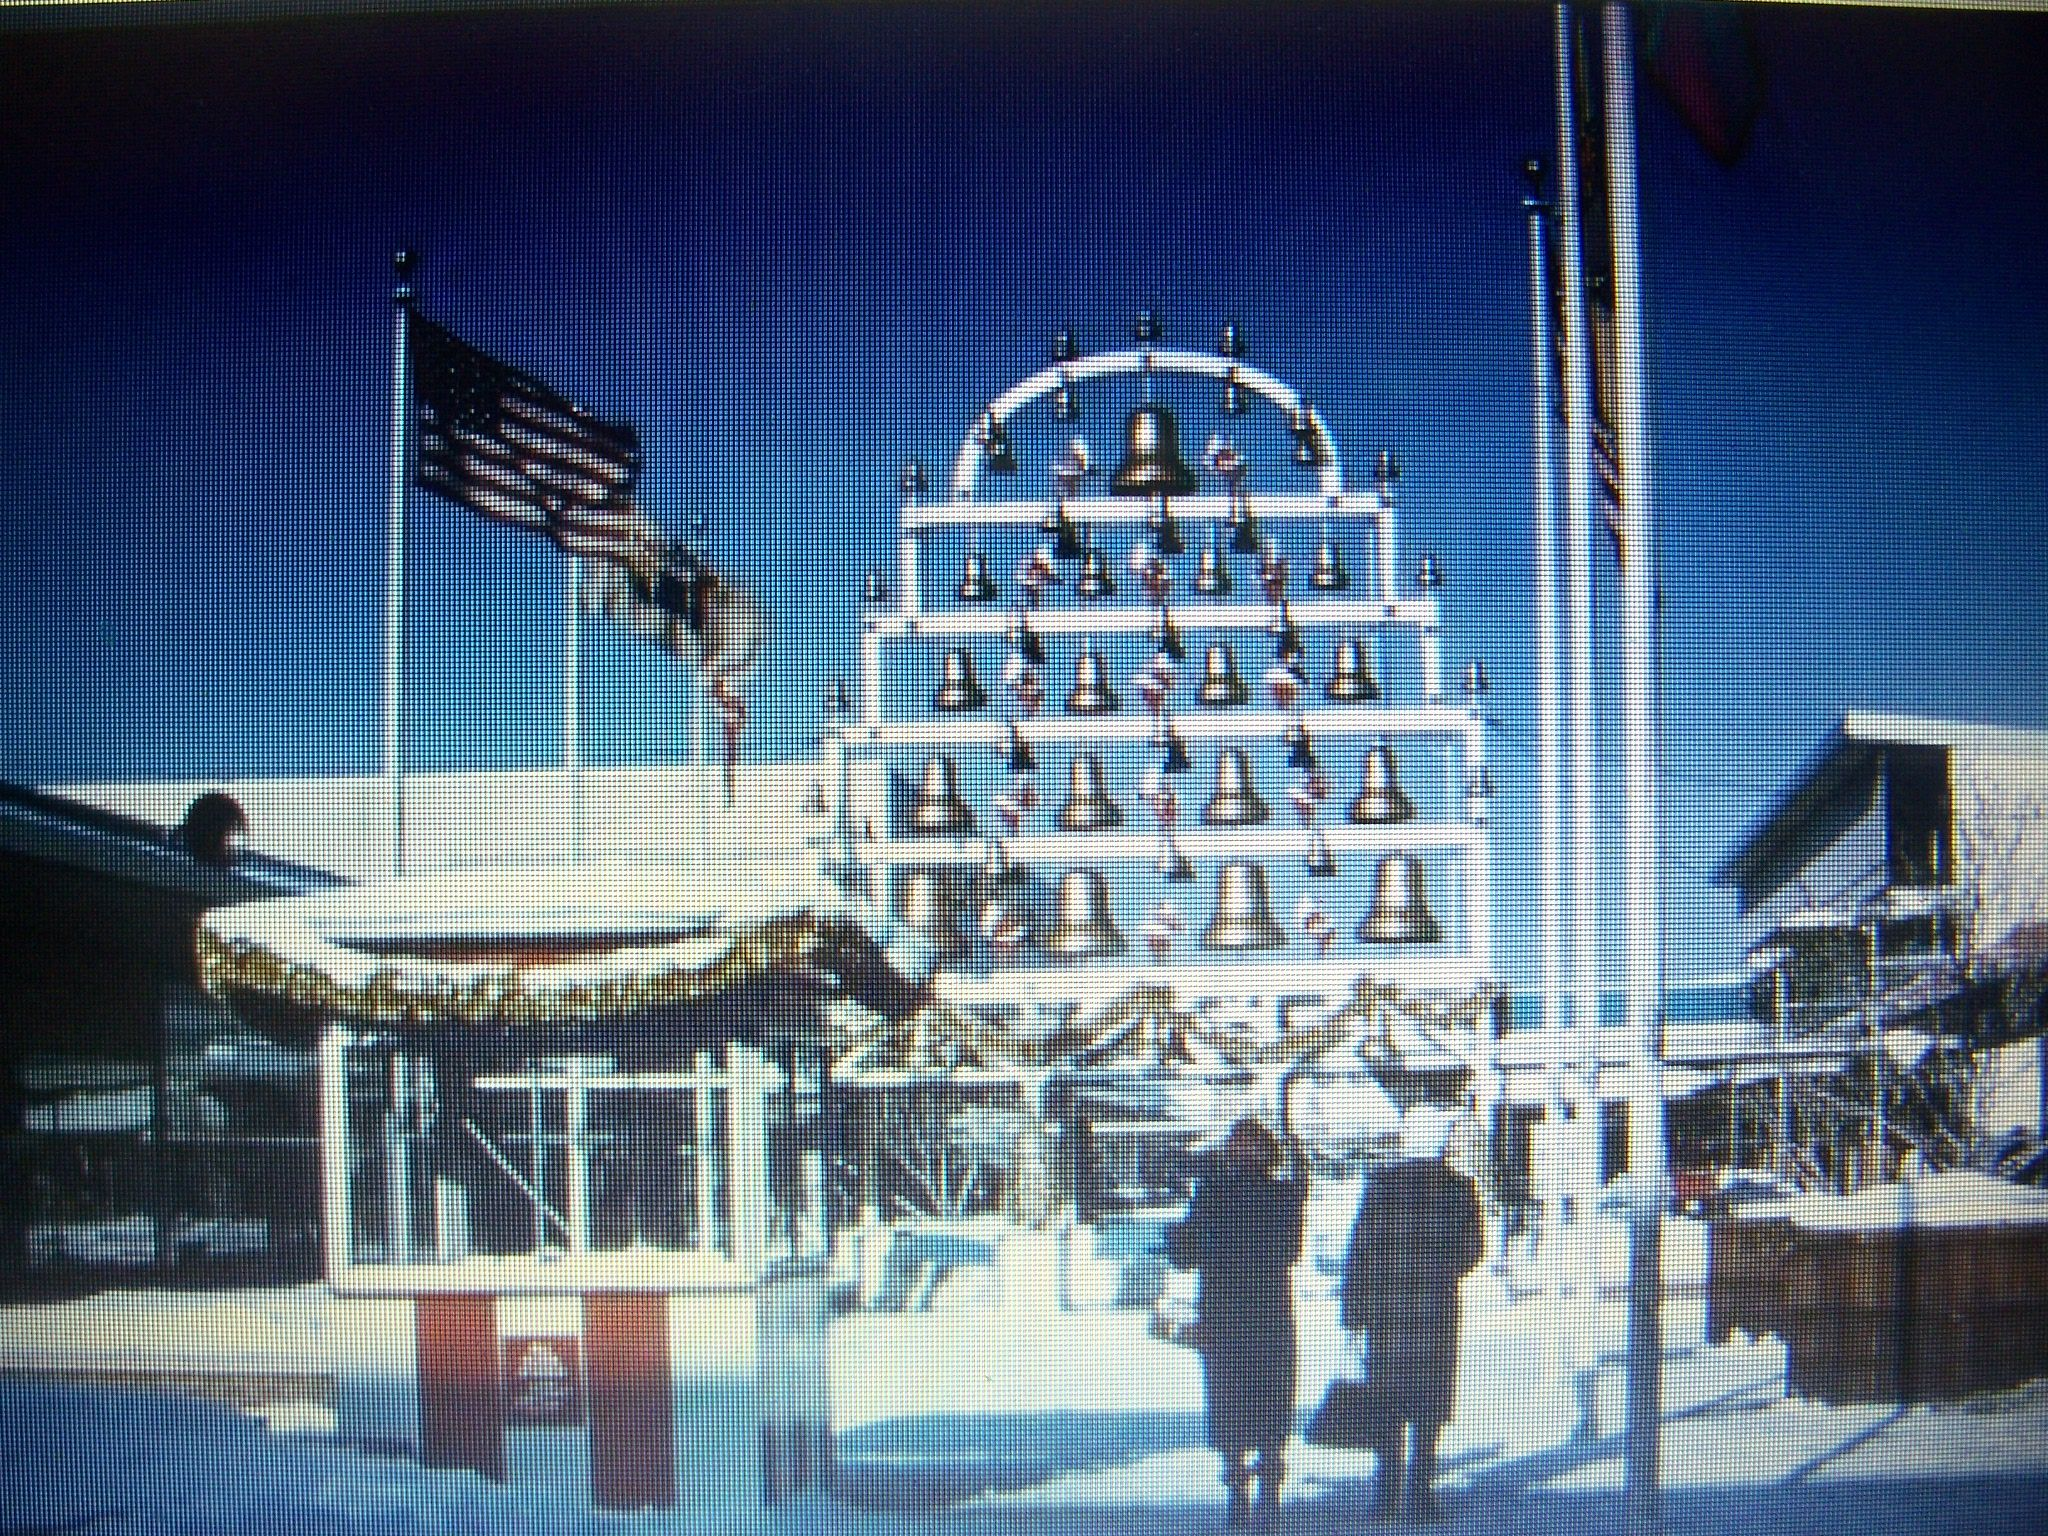 Paramus, NJ on Pinterest! The Chiming Bells at Christmas